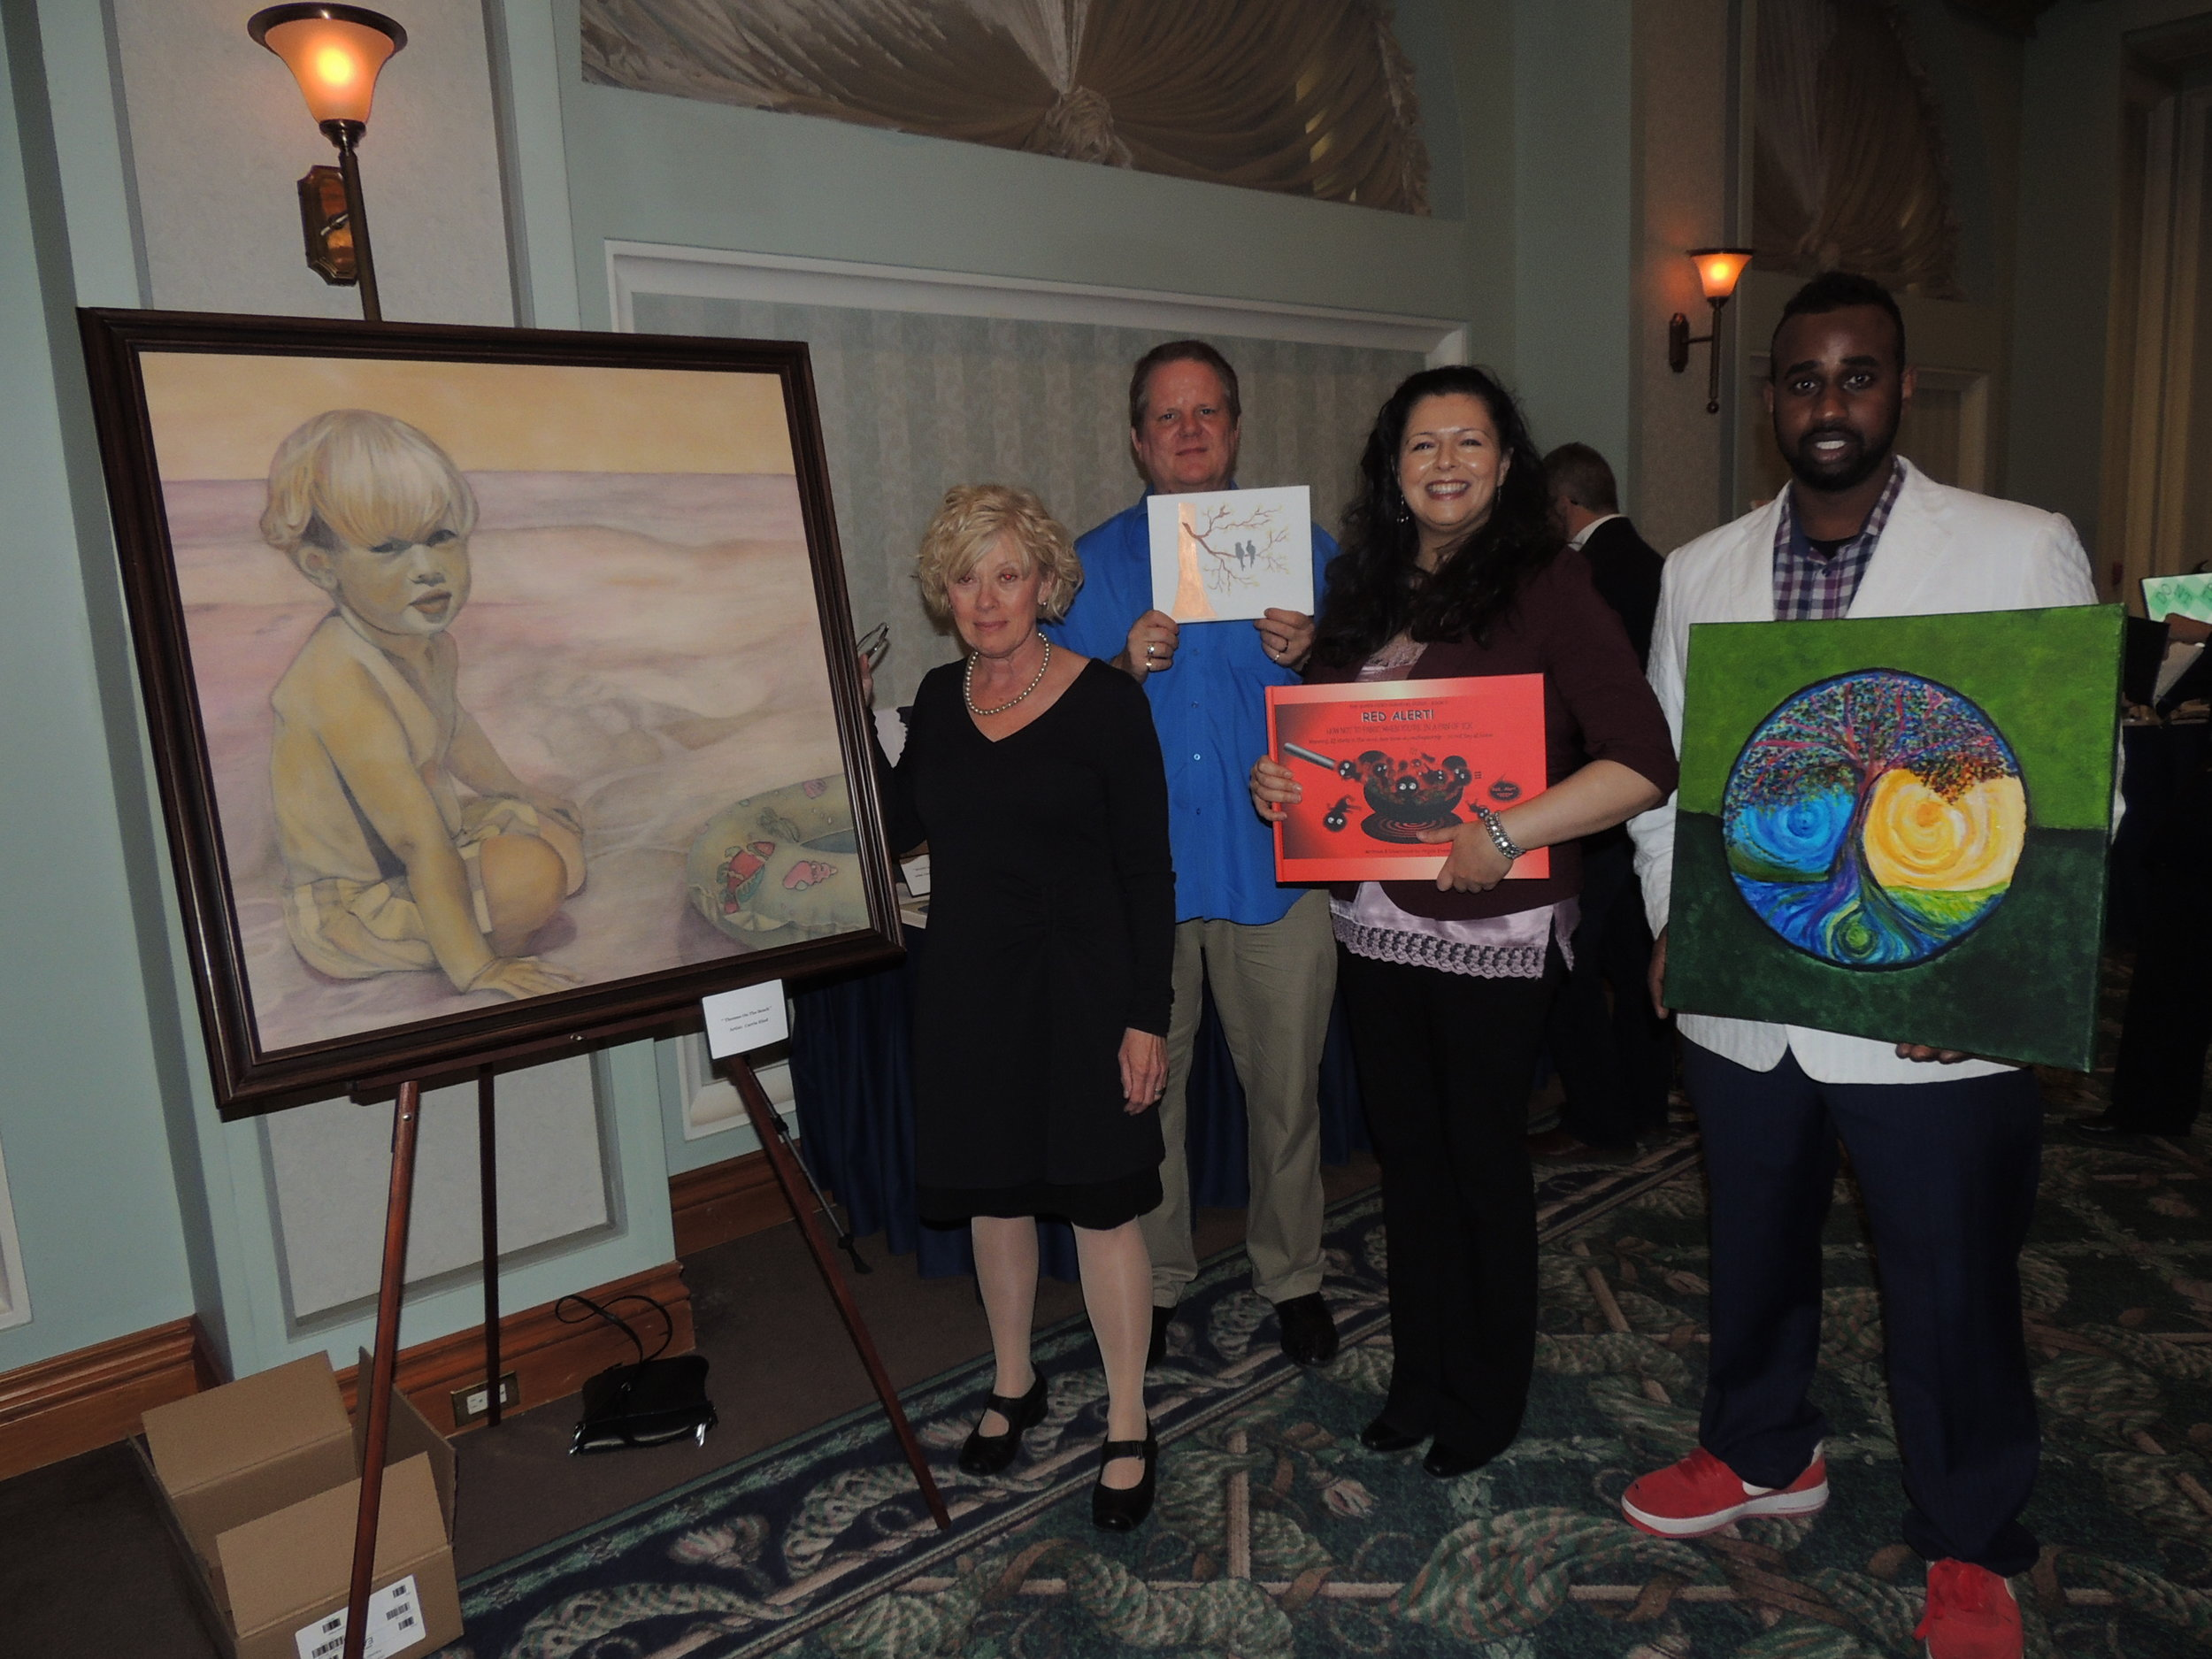 Group of Four artists: Carrie Hind, Gary Woyotowich, and  Artis 3  cover artist, Abel Mekonnen, standing with children's author Anjula Evans. Photo by Mira Louis.